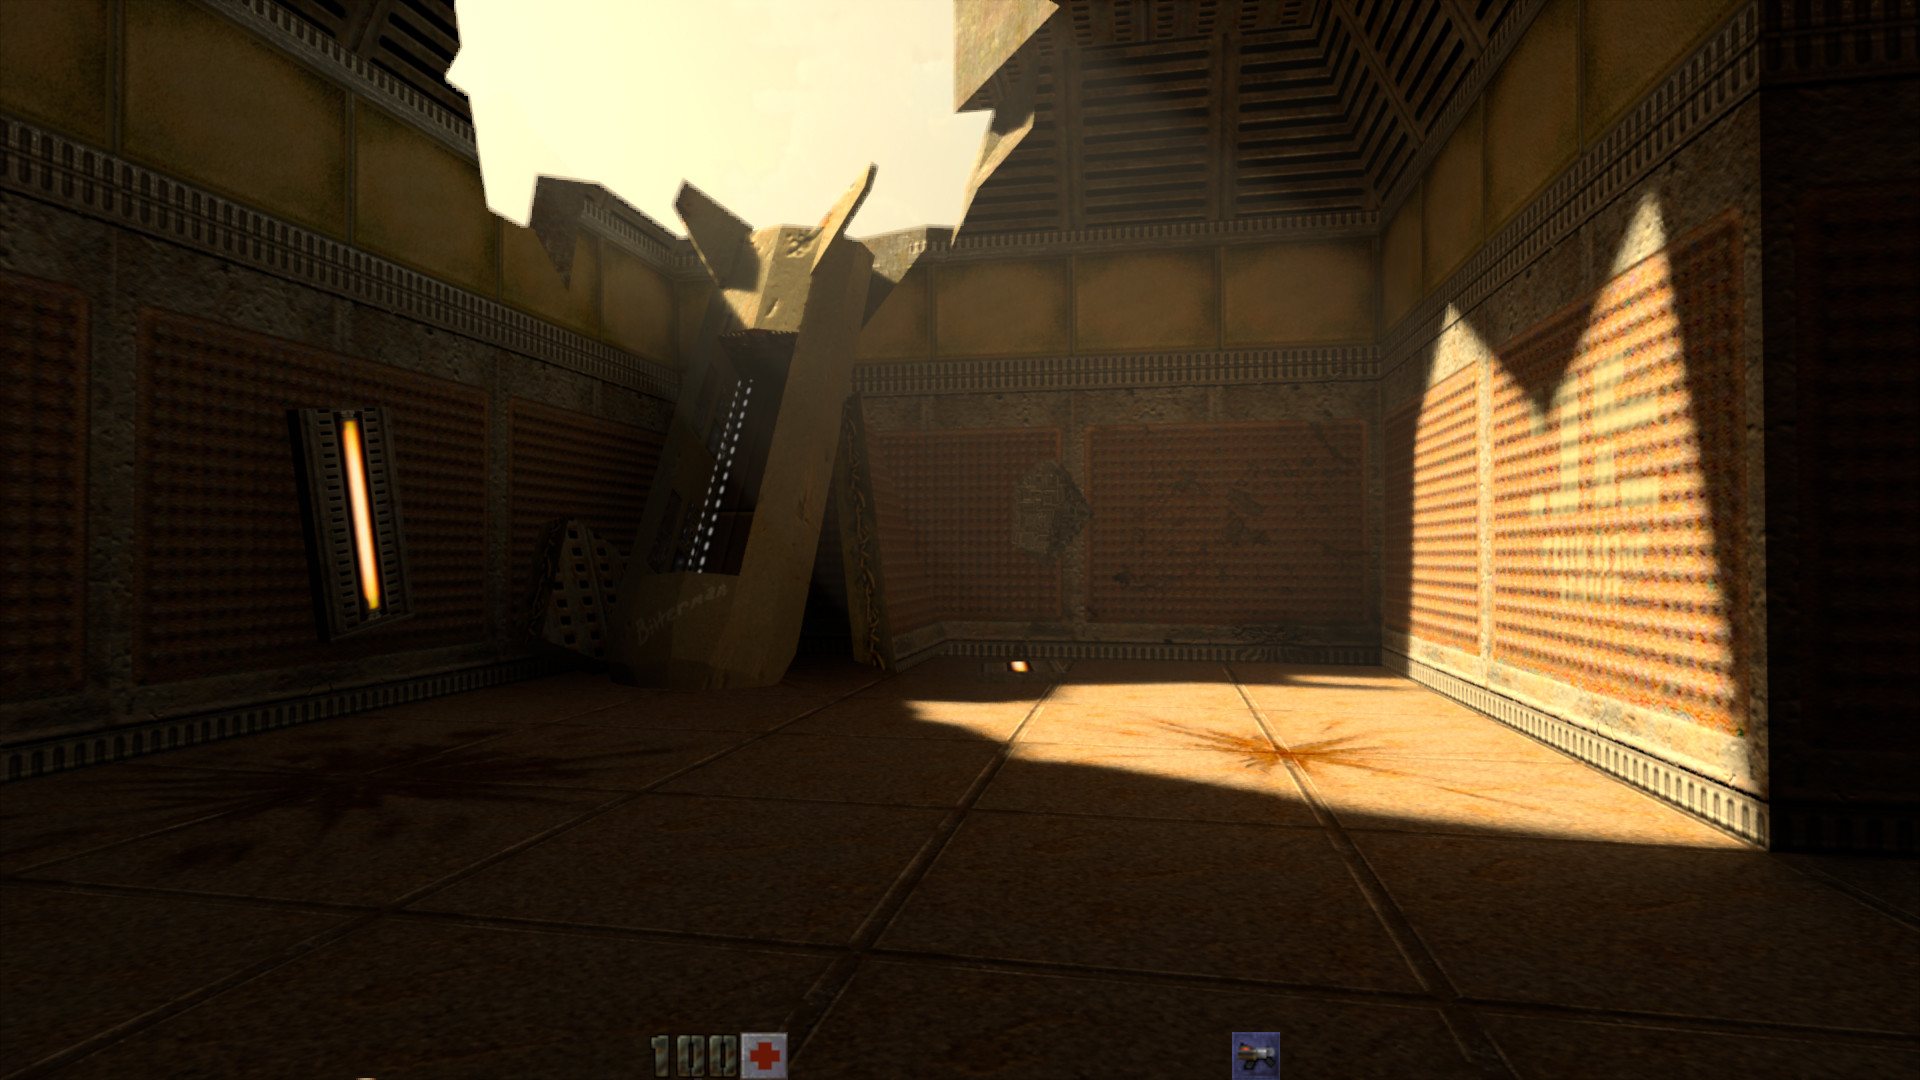 Quake II Reimagined with Ray-tracing on Vulkan | TechPowerUp